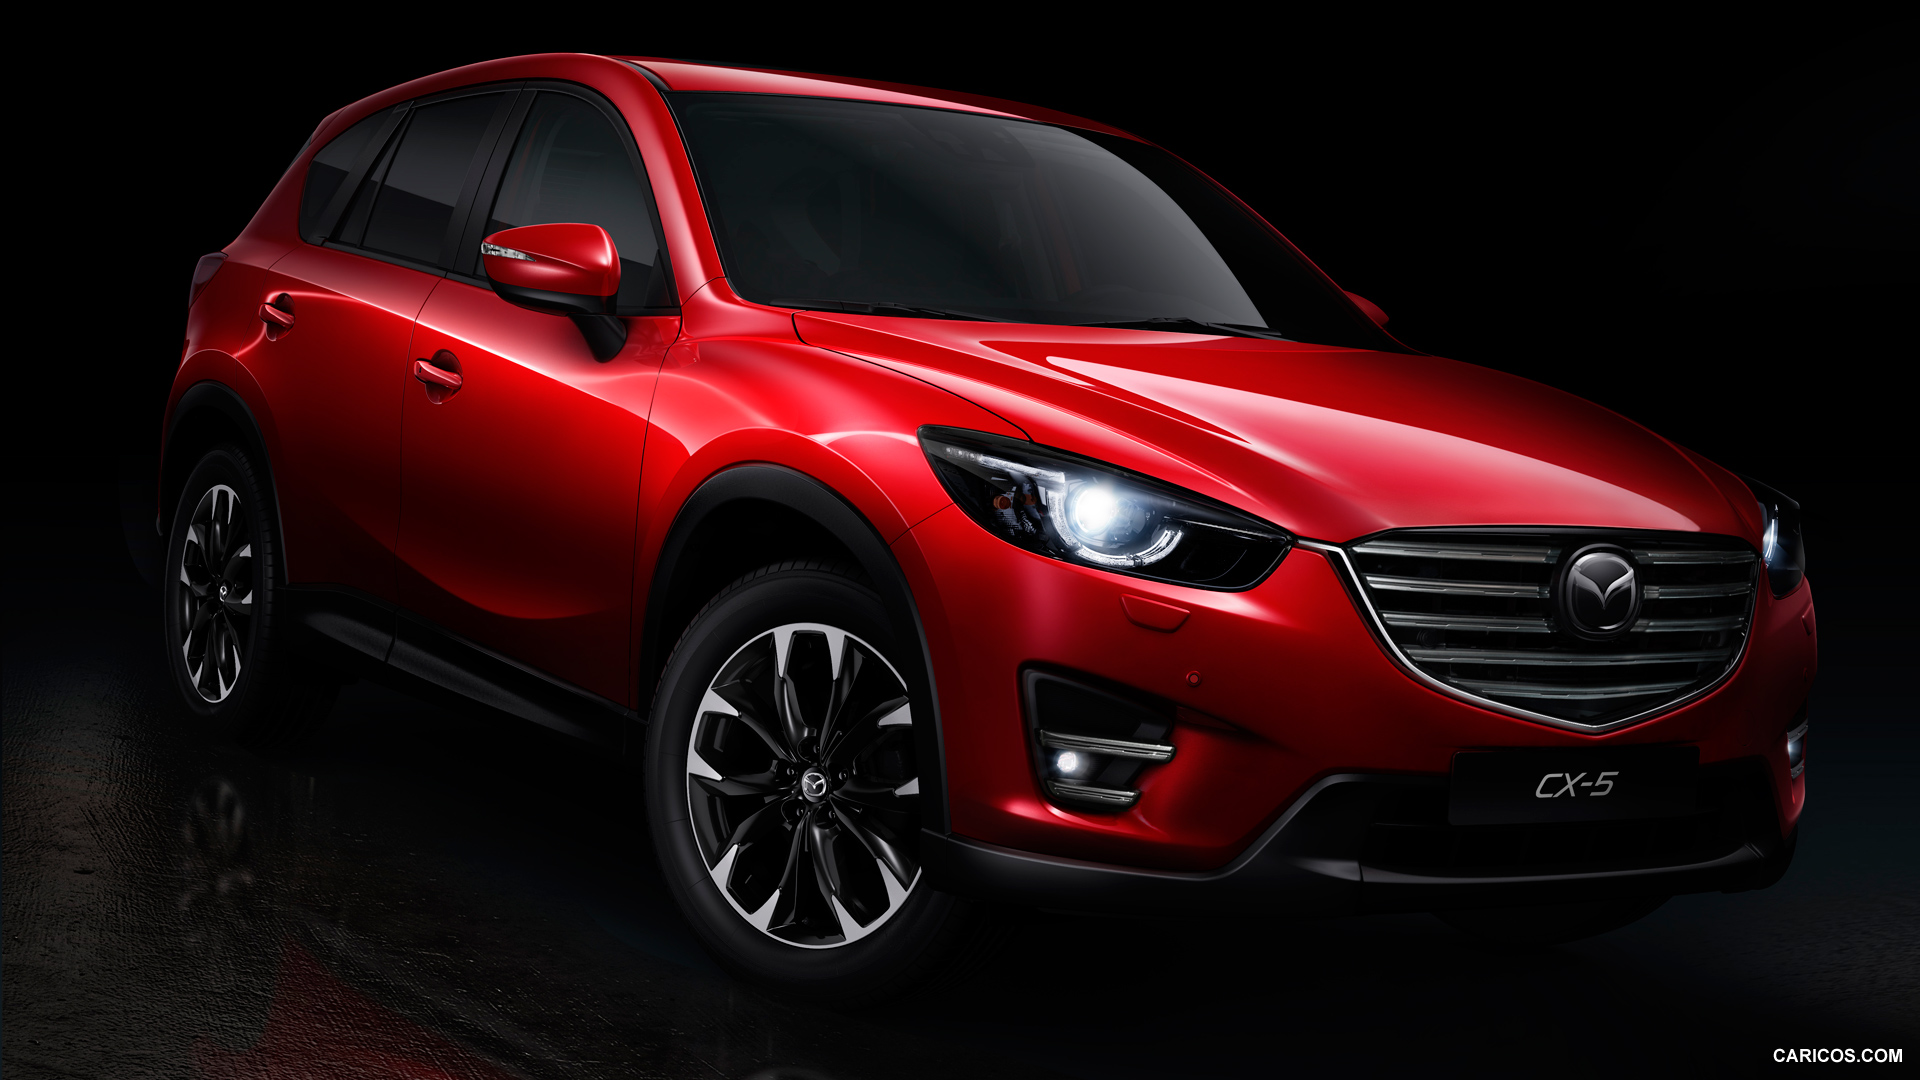 1920x1080 - Mazda CX-5 Wallpapers 20